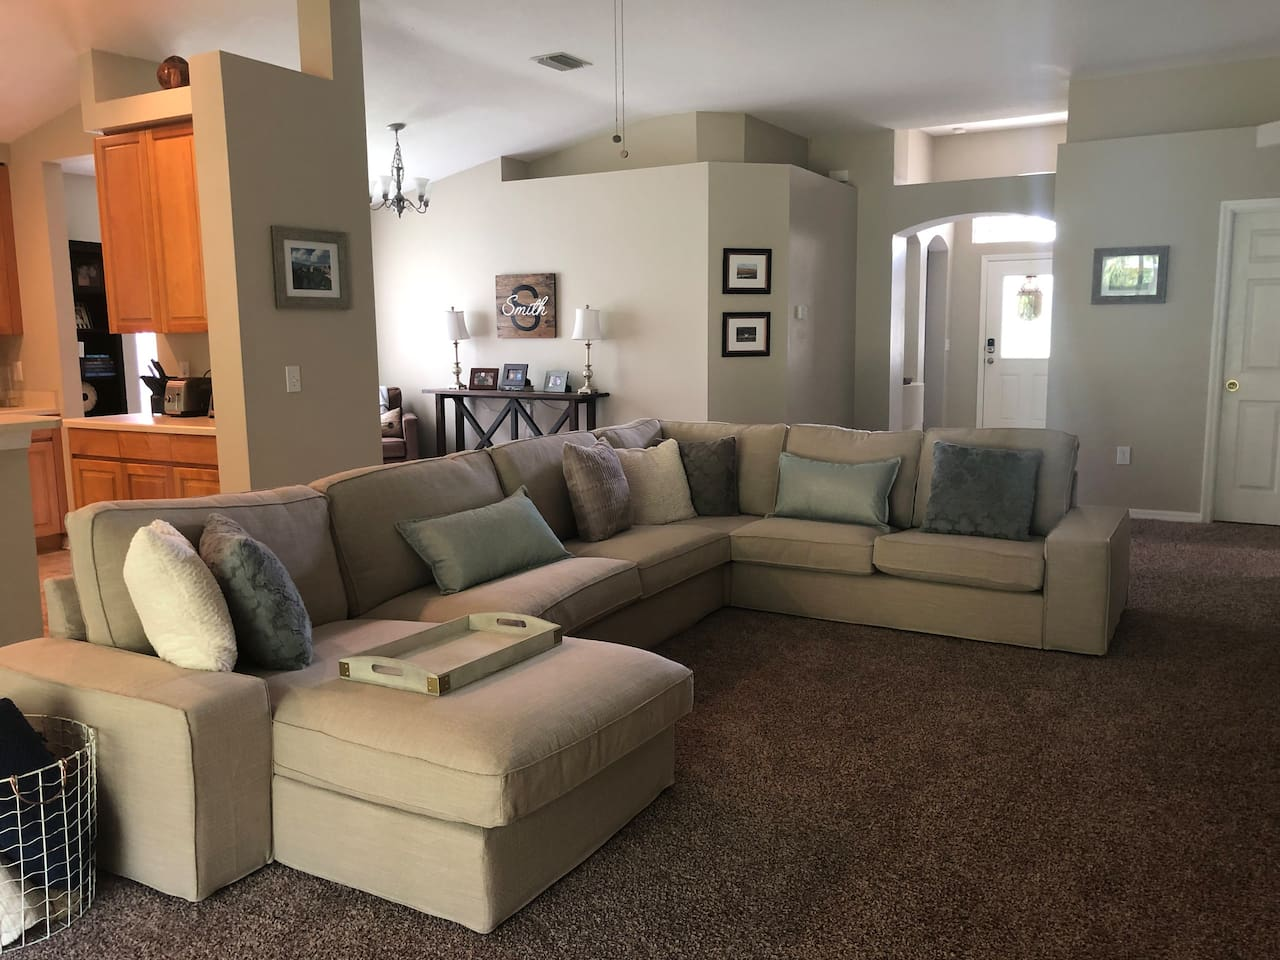 Living room/kitchen/entryway